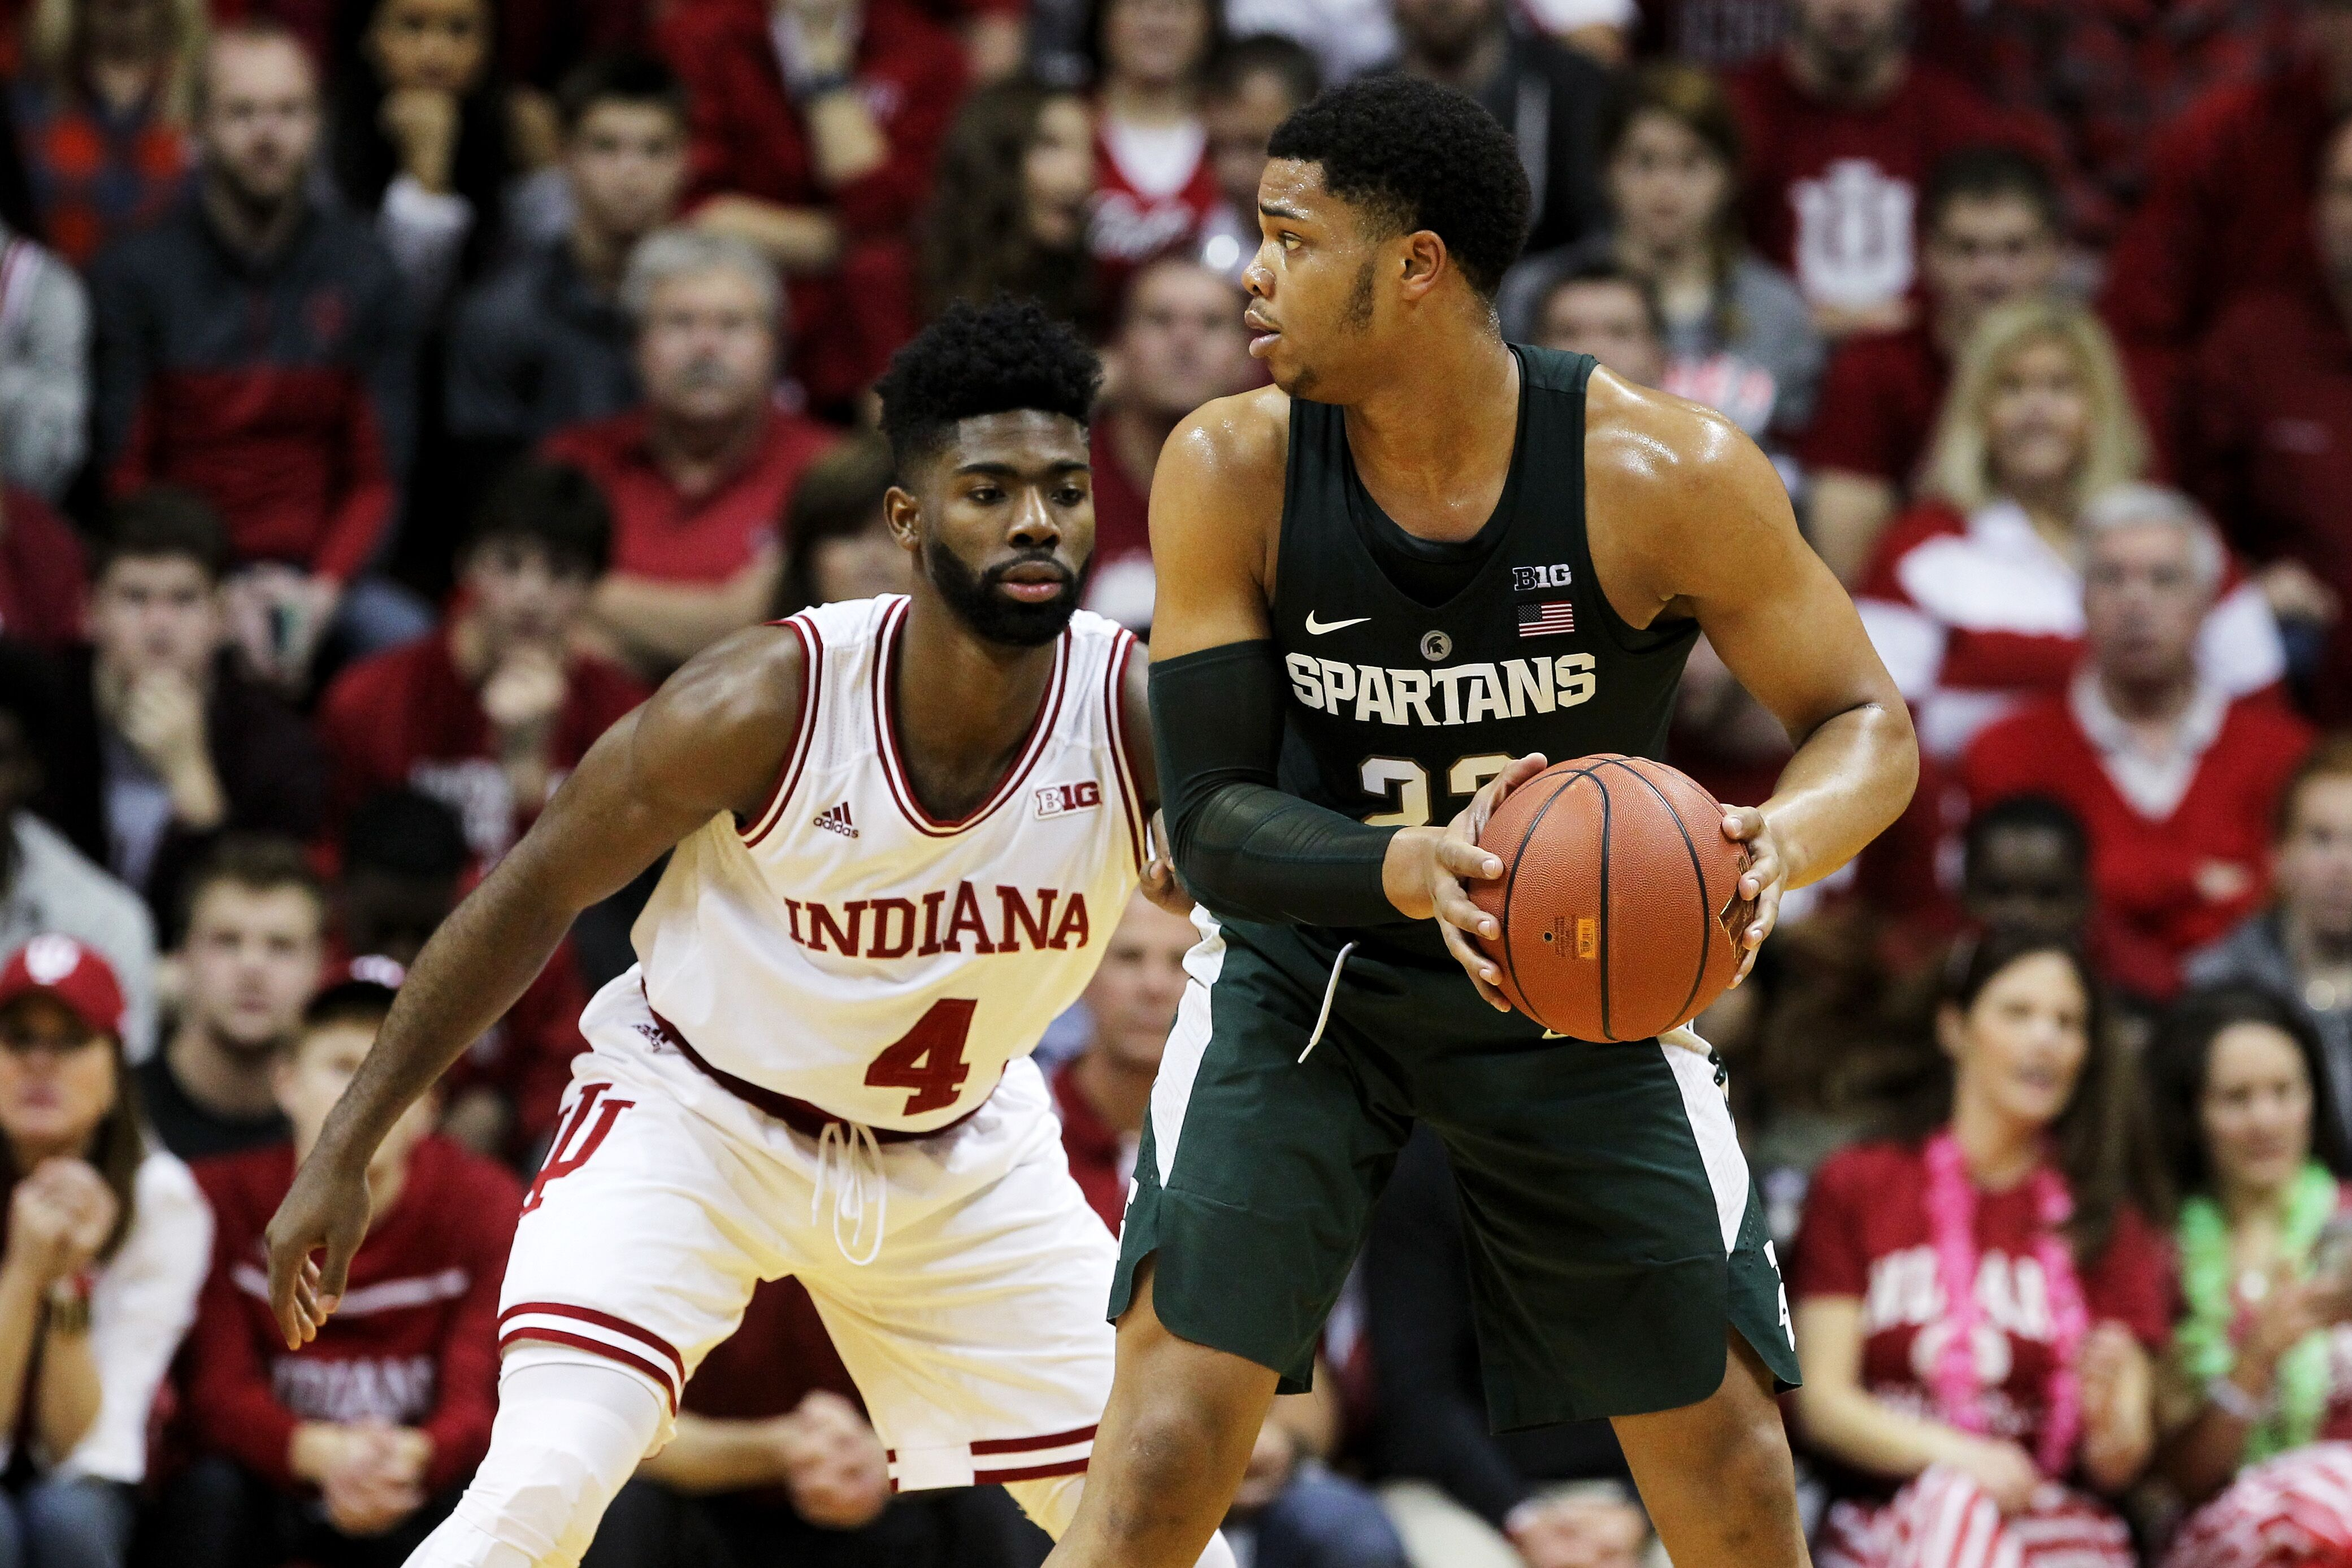 2017 18 Uk Basketball Schedule Now Complete: Michigan State Basketball: Complete 2017-18 Big Ten